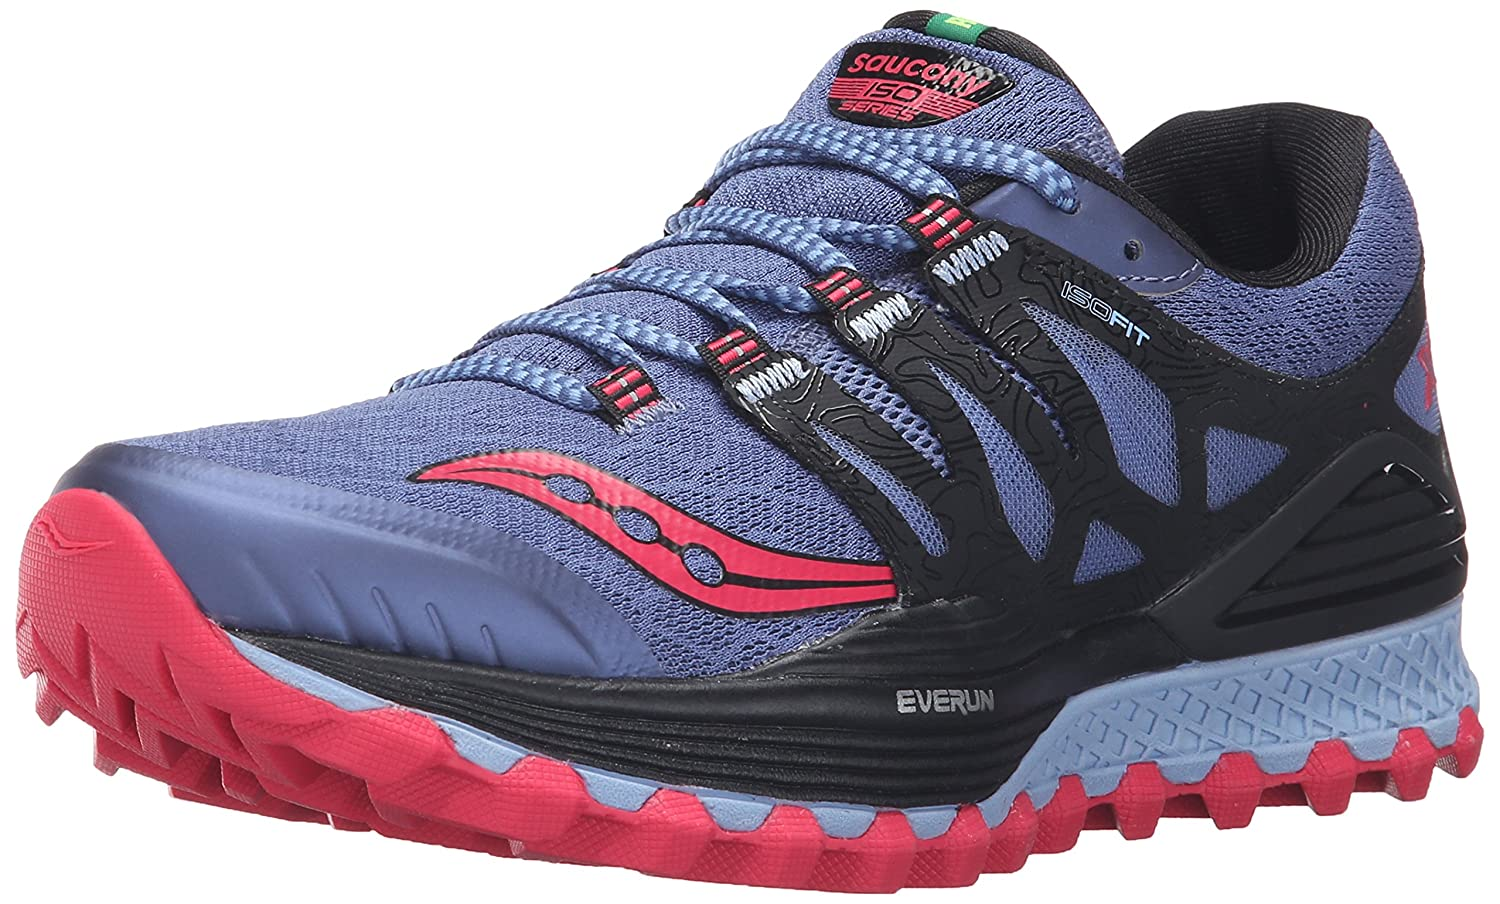 Saucony Women's Xodus Iso Trail Runner B018FAILTI 7 B(M) US|Denim/Black/Pink